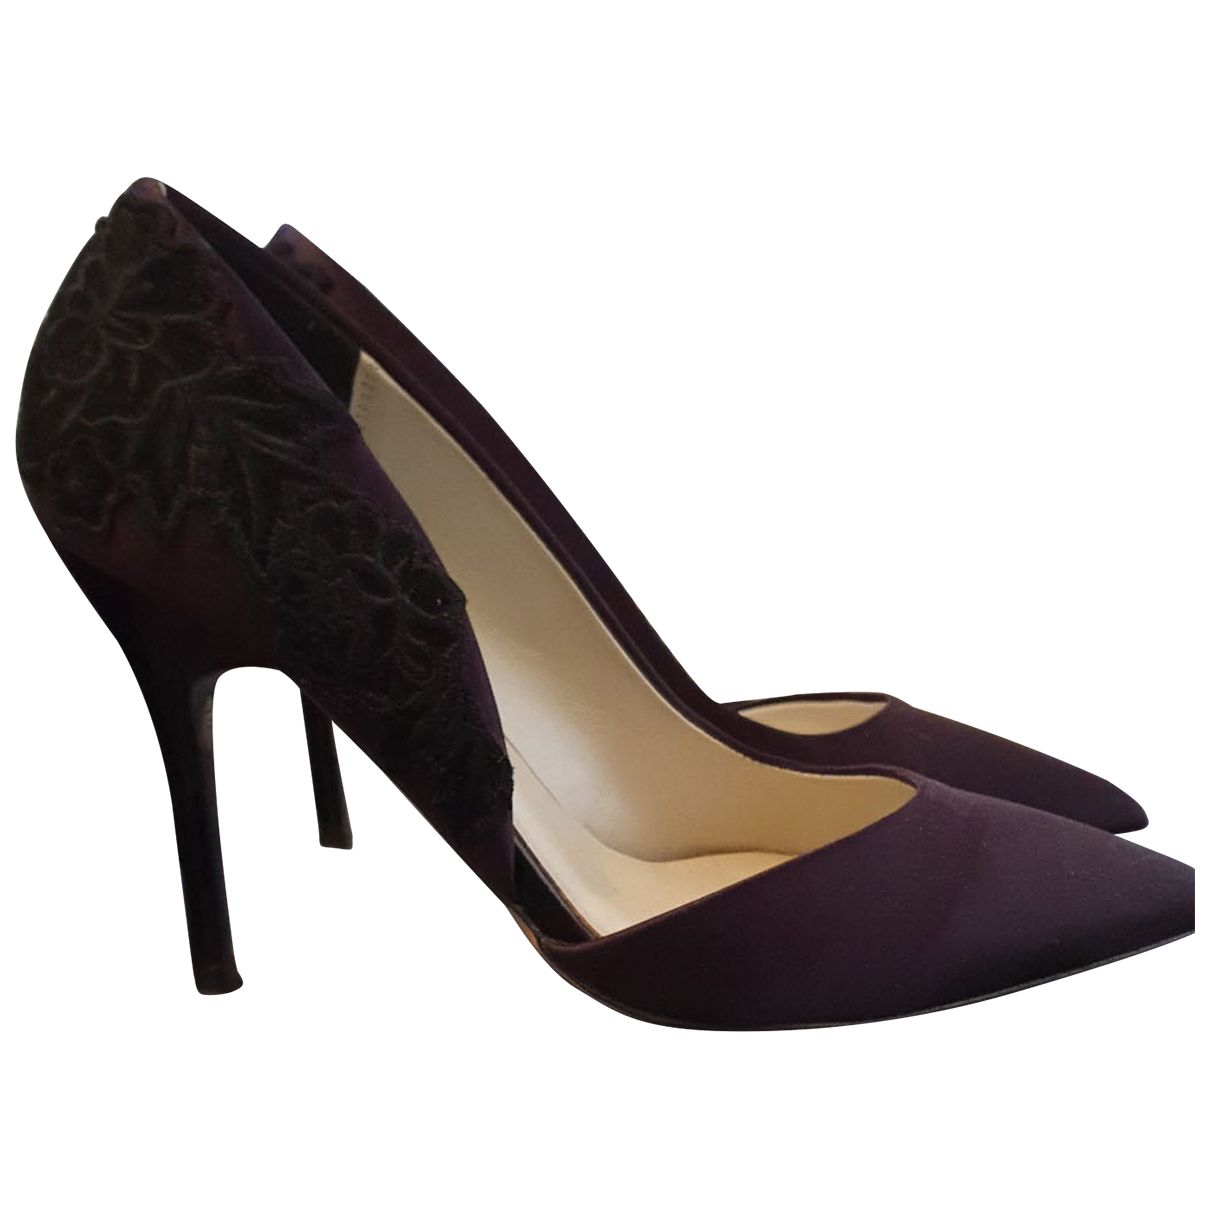 Karen Millen N Purple Leather Heels for Women 36 EU